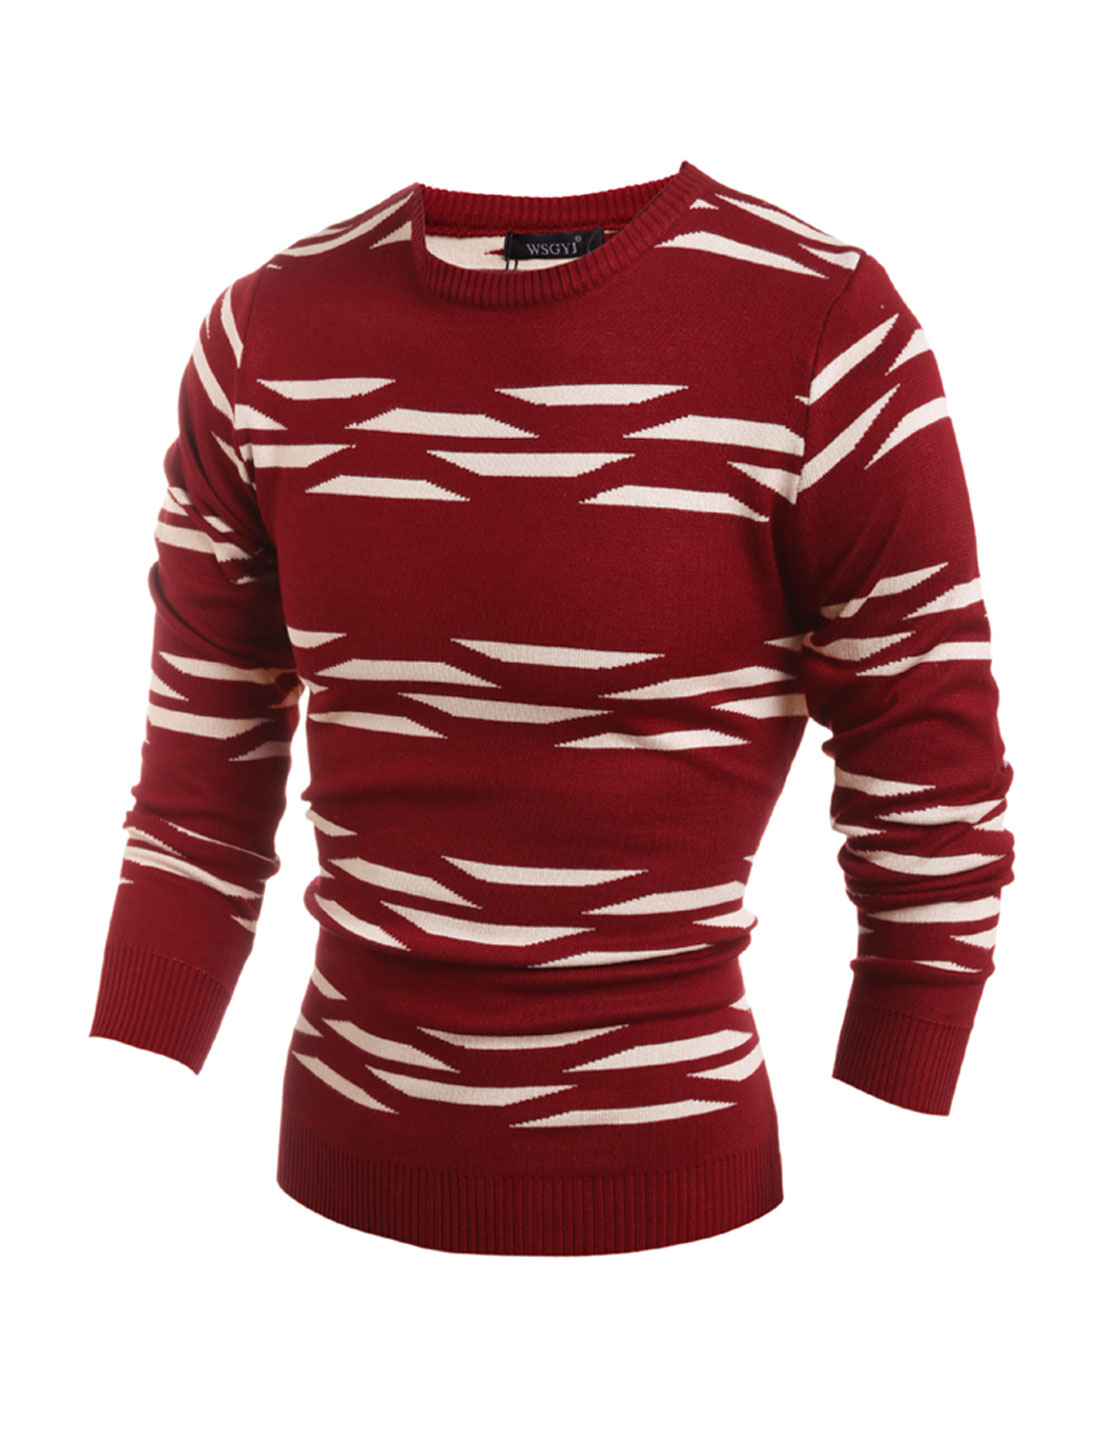 Men Crew Neck Geometric Slim Fit Knit Shirt Red M